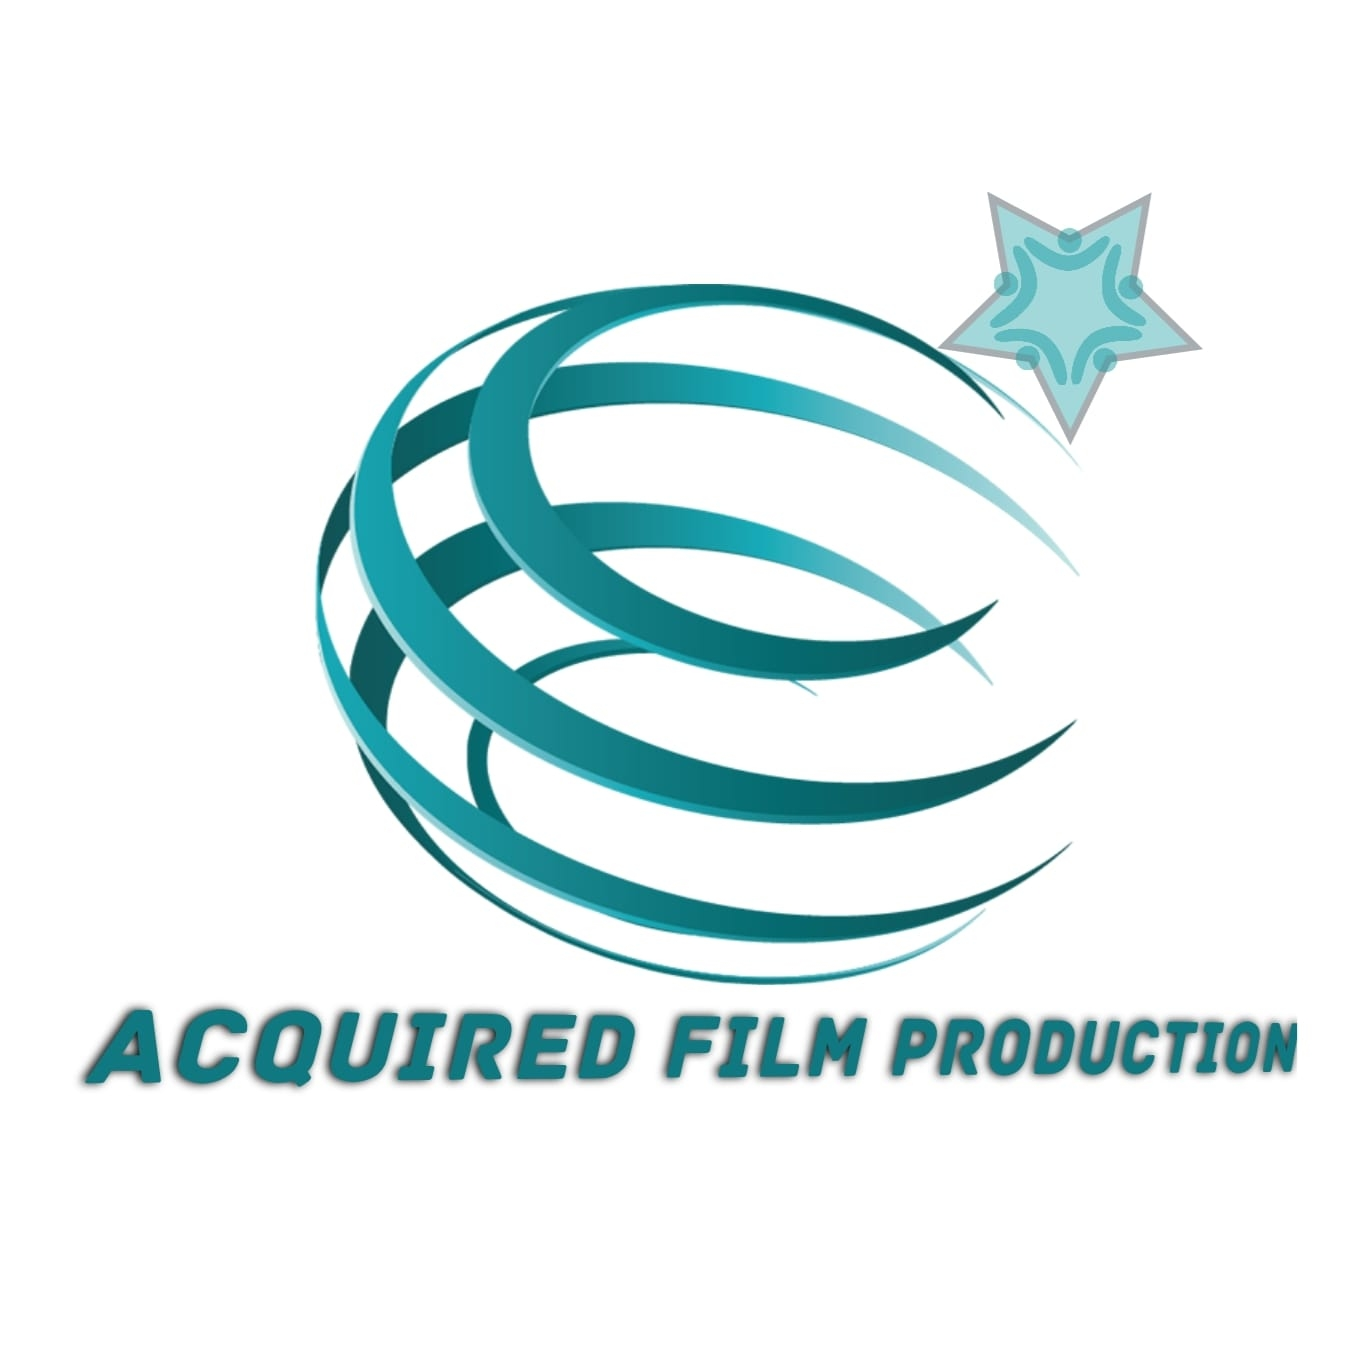 Acquired Film Production